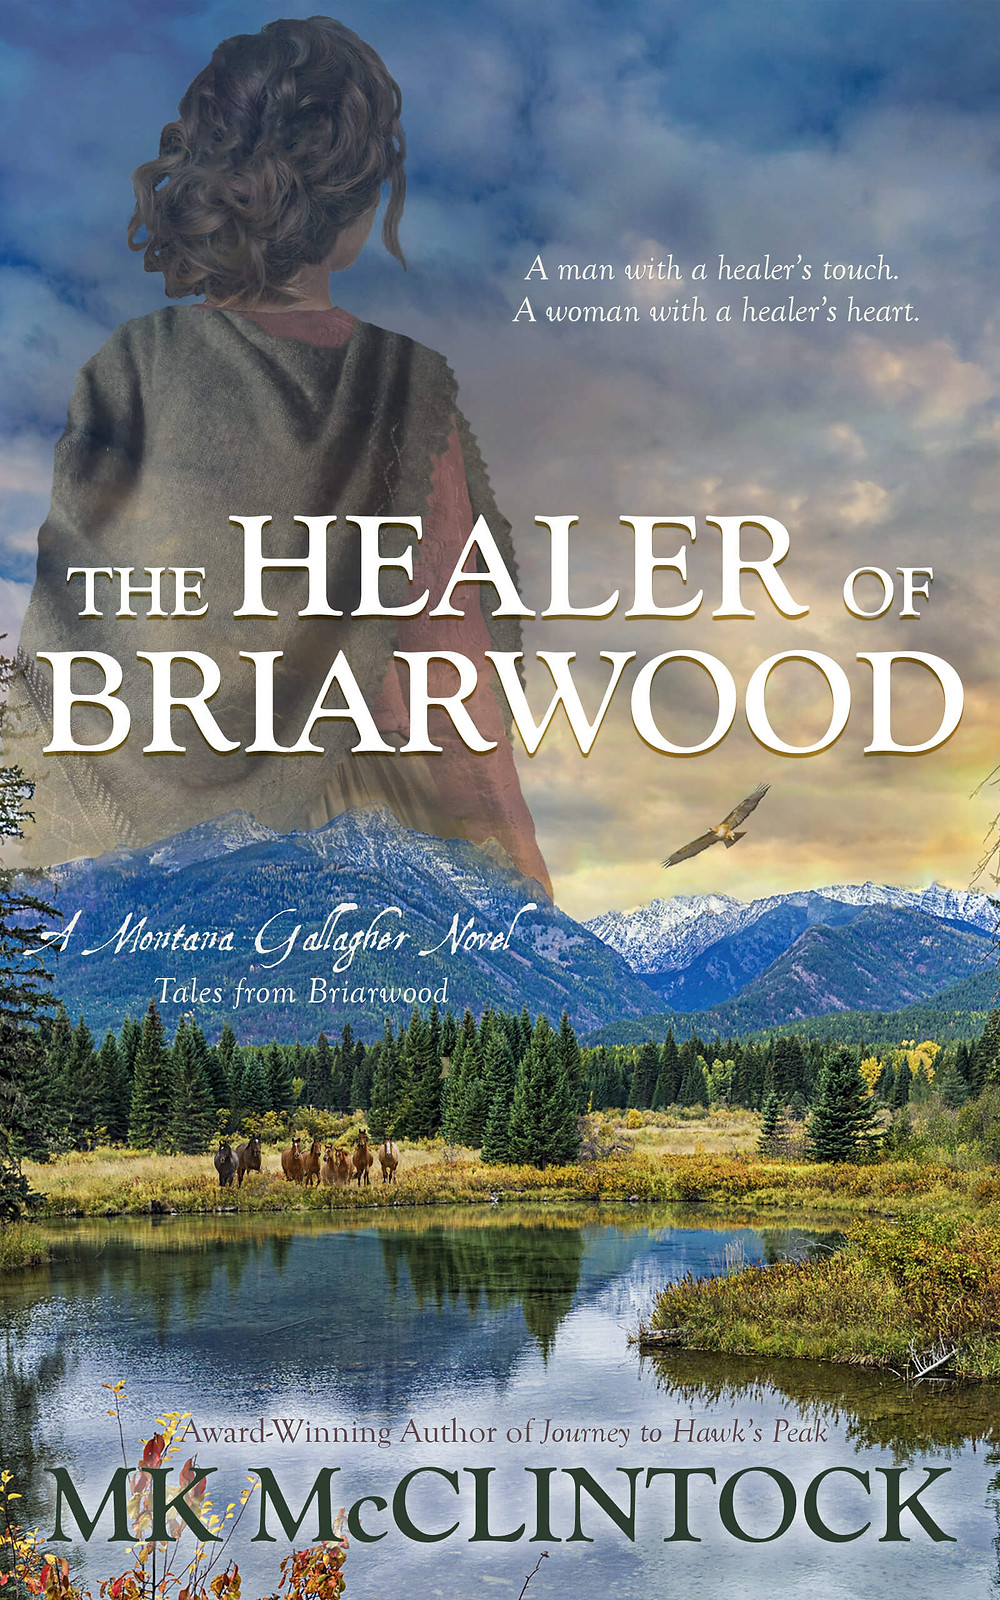 The Healer of Briarwood by MK McClintock - Historical Western Romance